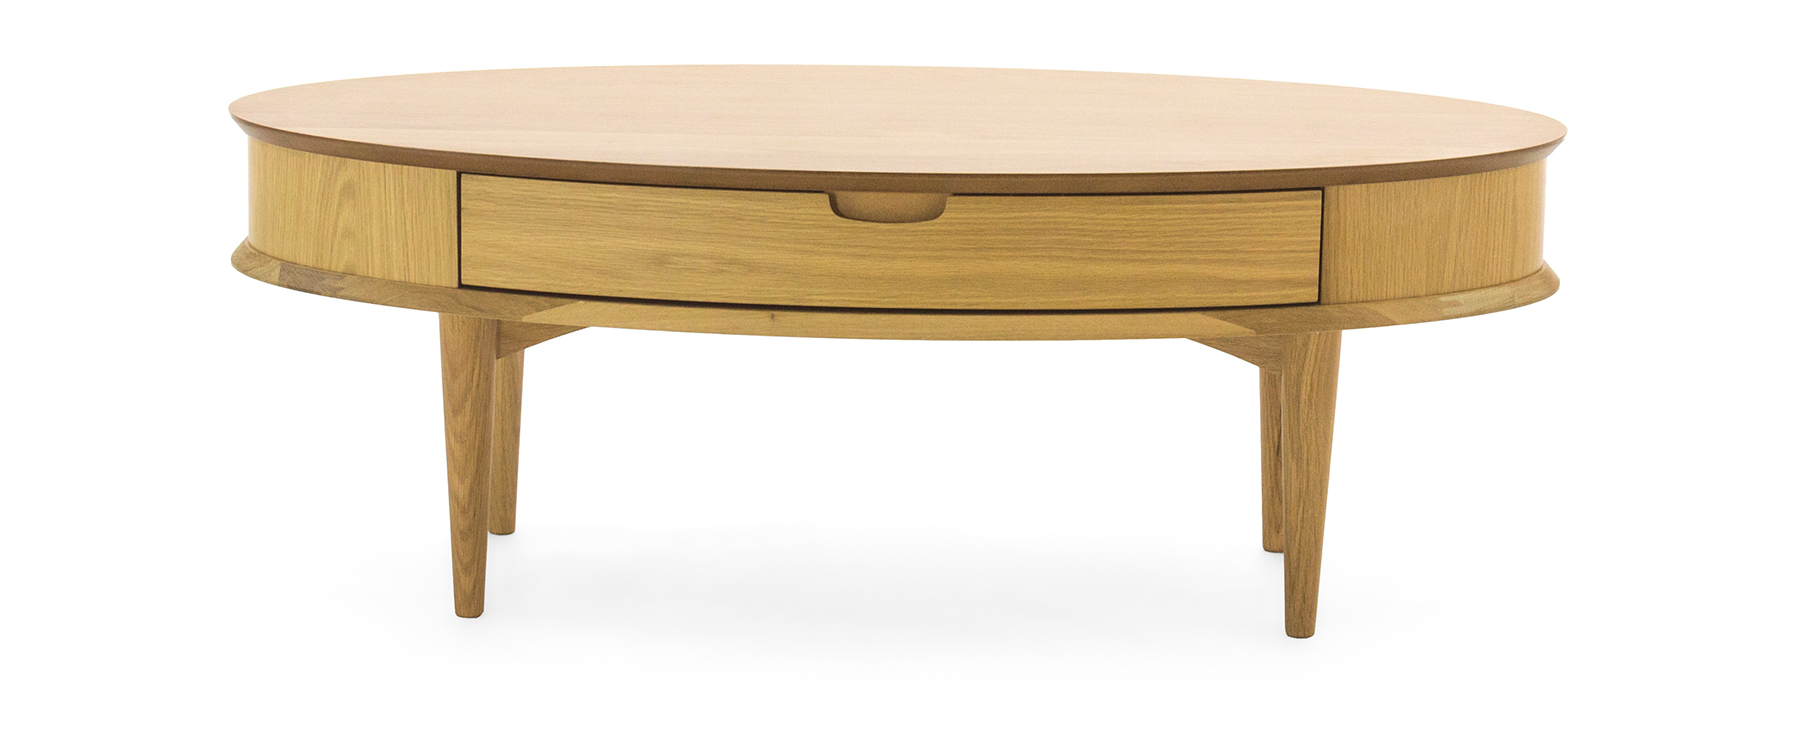 Swell Oslo Oak Coffee Table With Drawer Theyellowbook Wood Chair Design Ideas Theyellowbookinfo